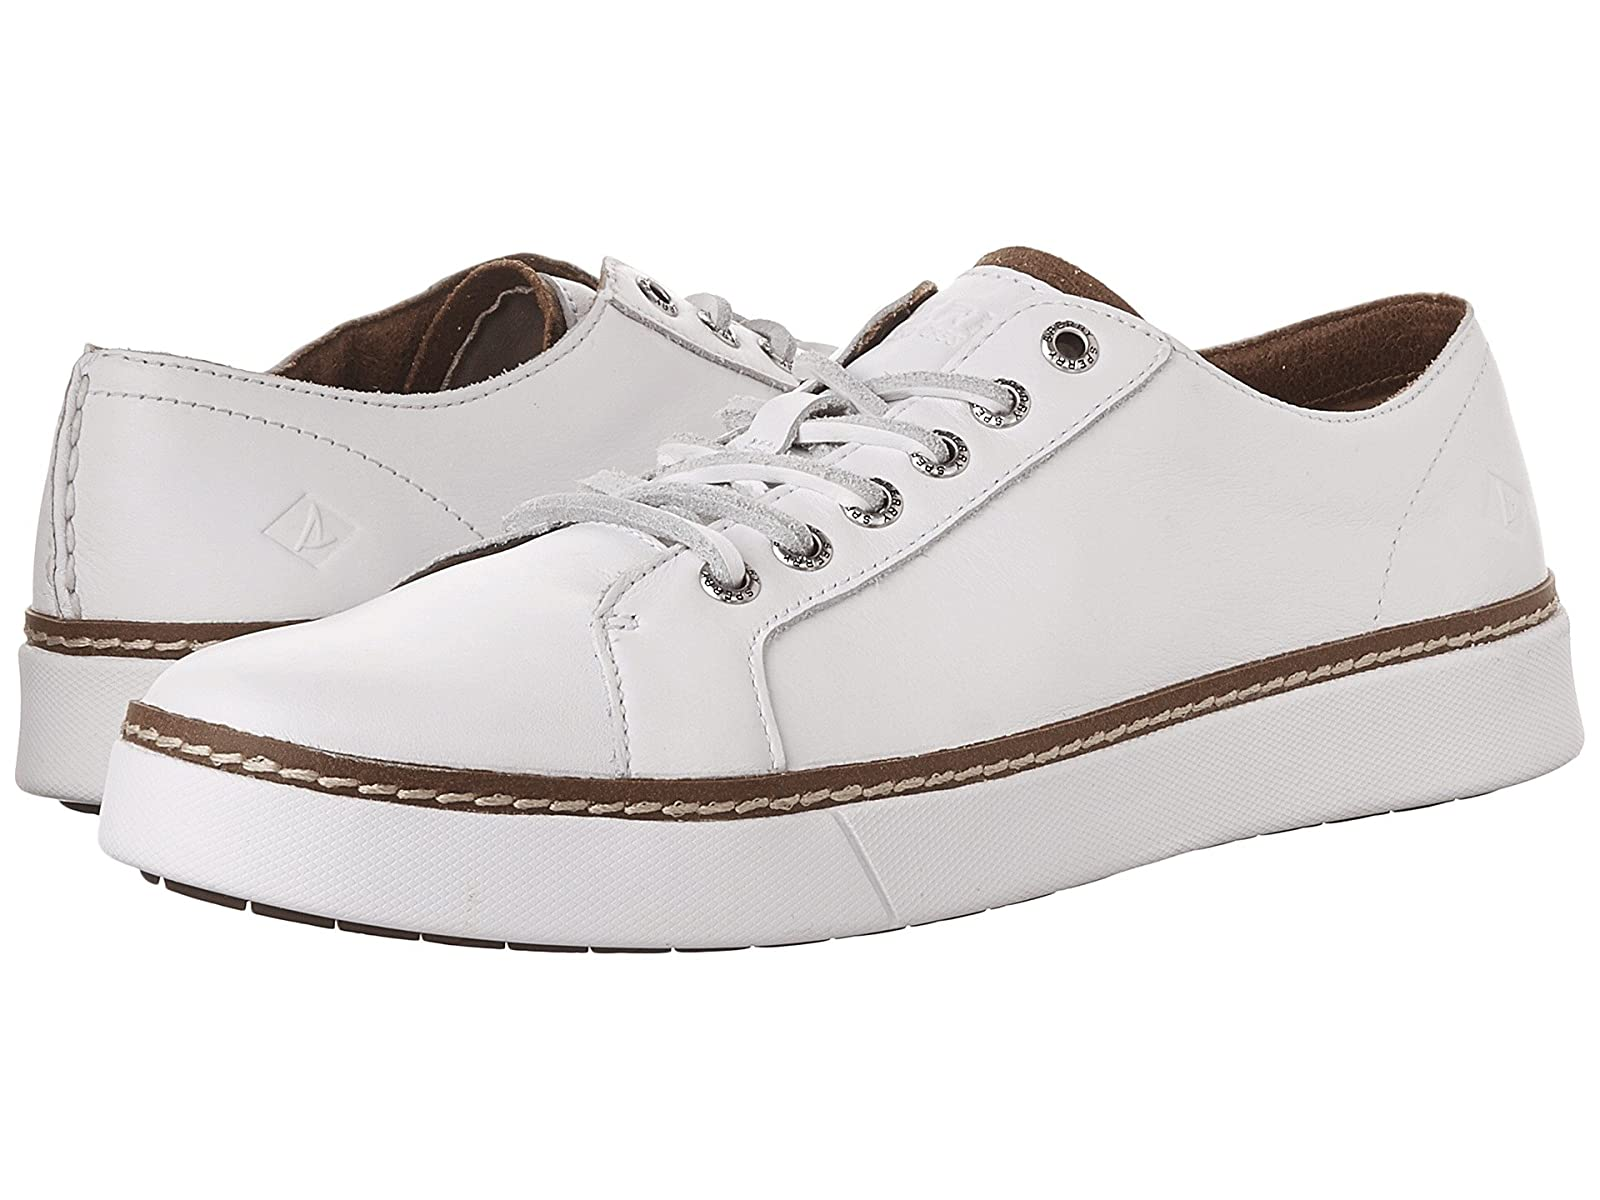 Sperry Clipper LTTCheap and distinctive eye-catching shoes